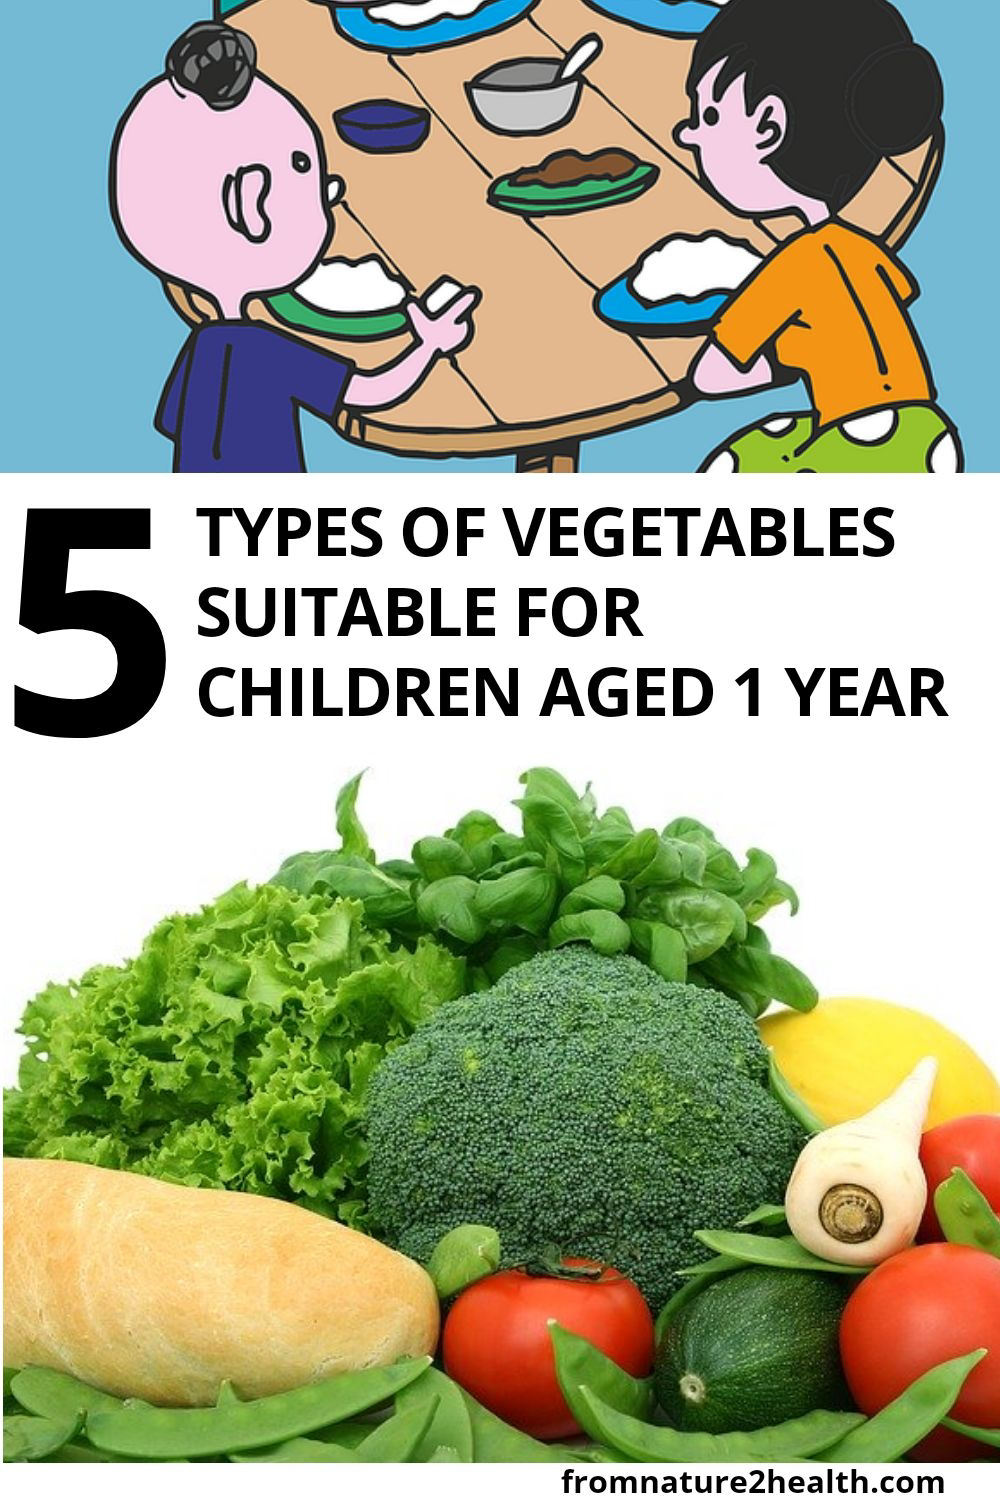 5 Types of Vegetables Suitable for Children Aged 1 Year 5 Types of Vegetables Suitable for Children Aged 1 Year